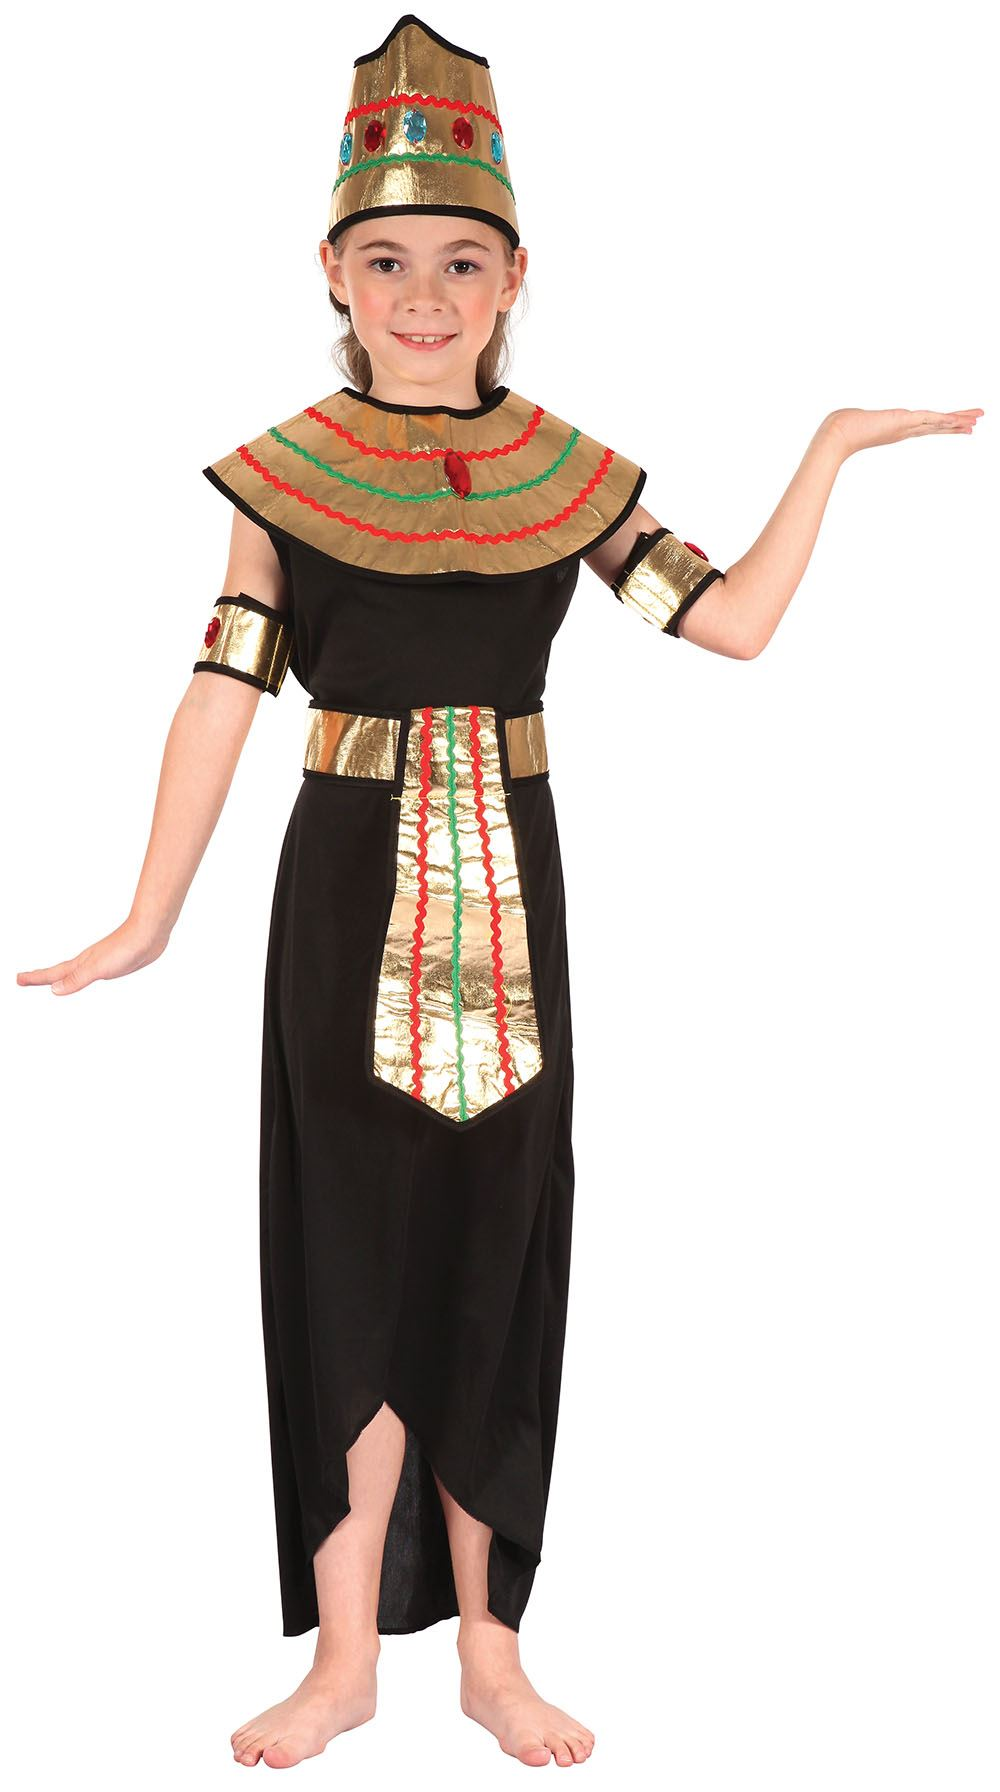 Find great deals on eBay for egyptian clothing. Shop with confidence.